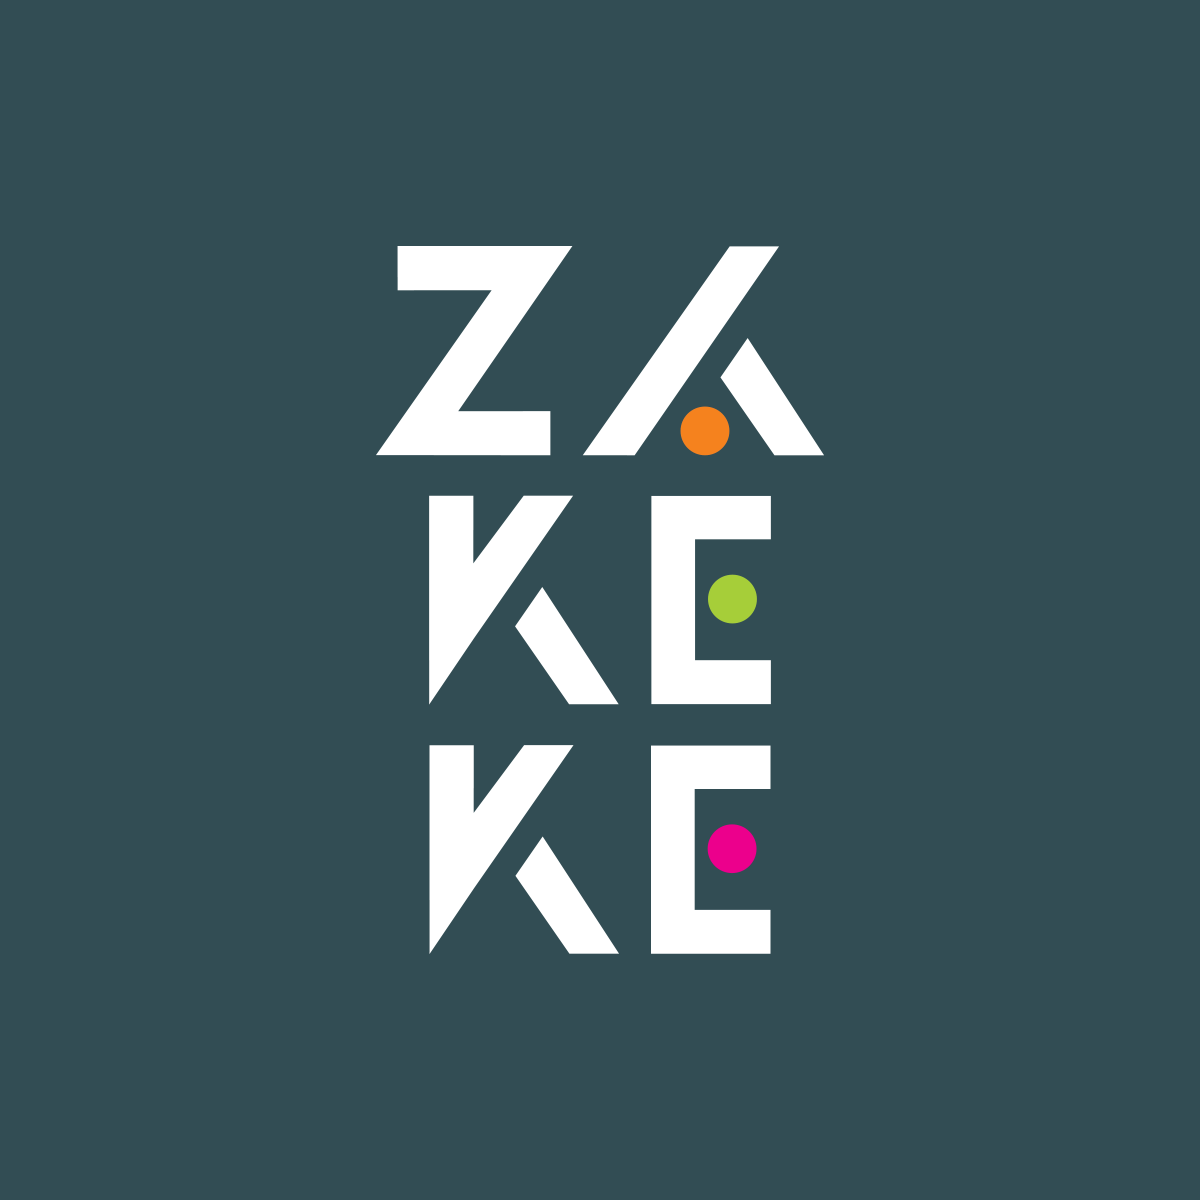 Hire Shopify Experts to integrate Zakeke Product Customizer app into a Shopify store